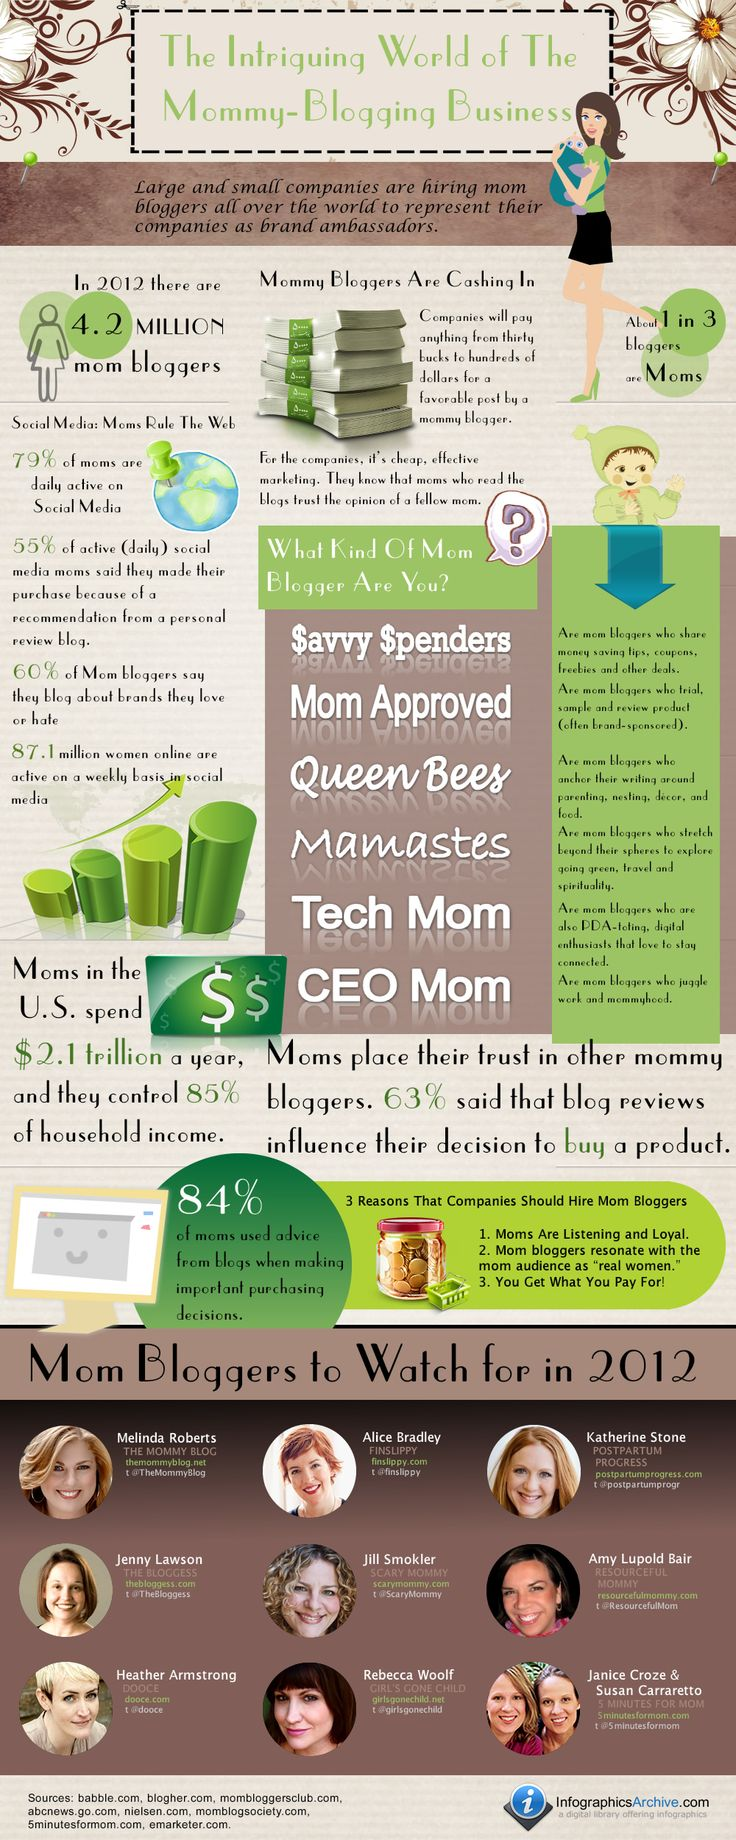 Large and small companies are hiring mom bloggers all over the world to represent their companies as brand ambassadors. Take a look at the infographic below to find out why your brand should hire Mom bloggers!    Why? You Might ask, the numbers speak for themselves.